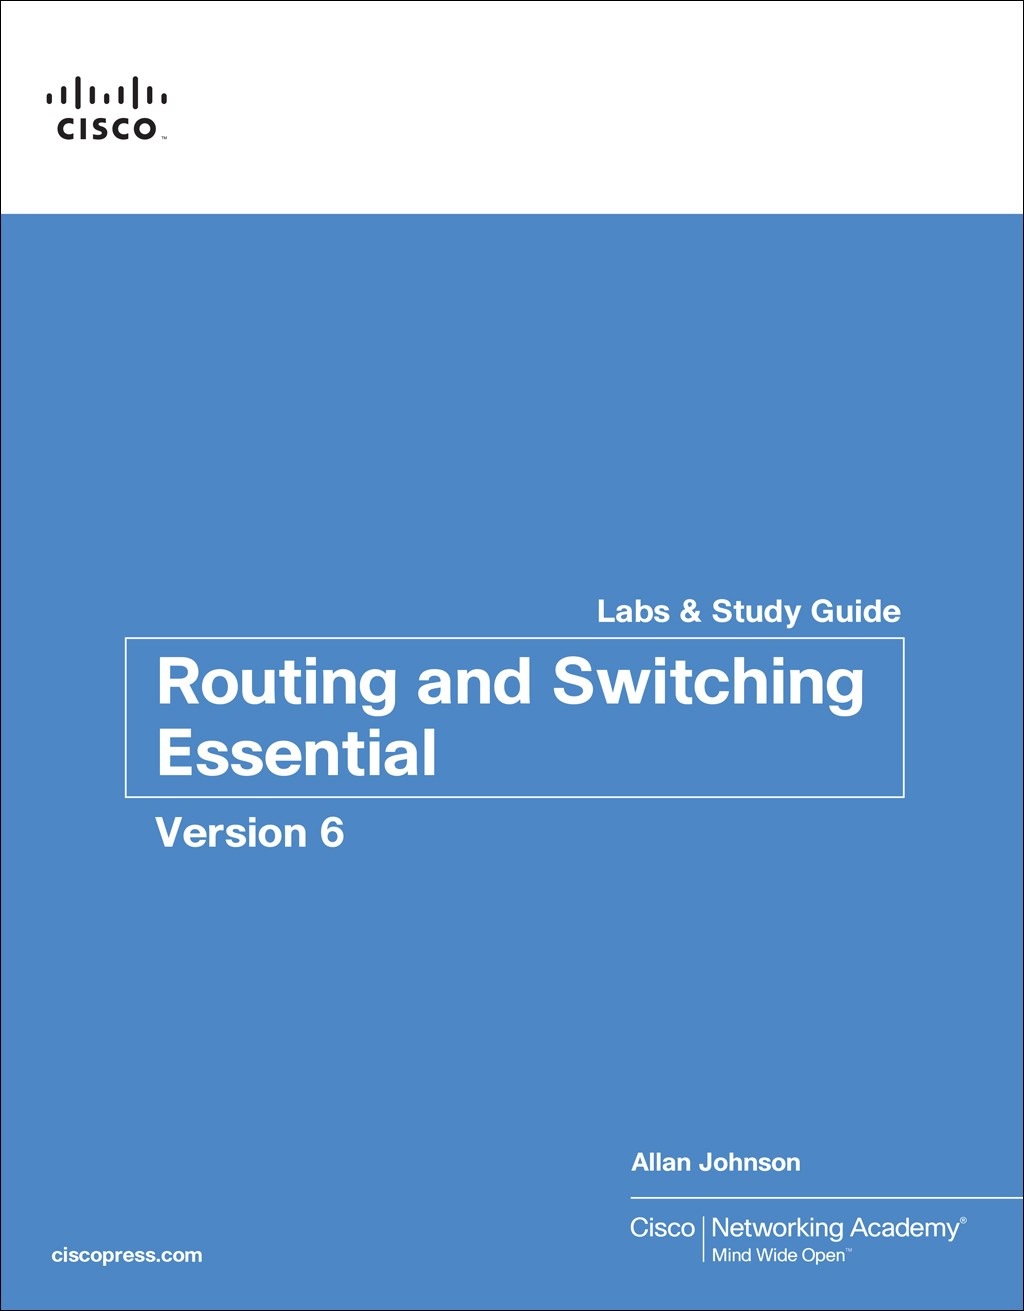 routing and switching essentials v6 labs   study guide ccna security study guide exam 210-260 pdf ccna security study guide exam 210-260 pdf